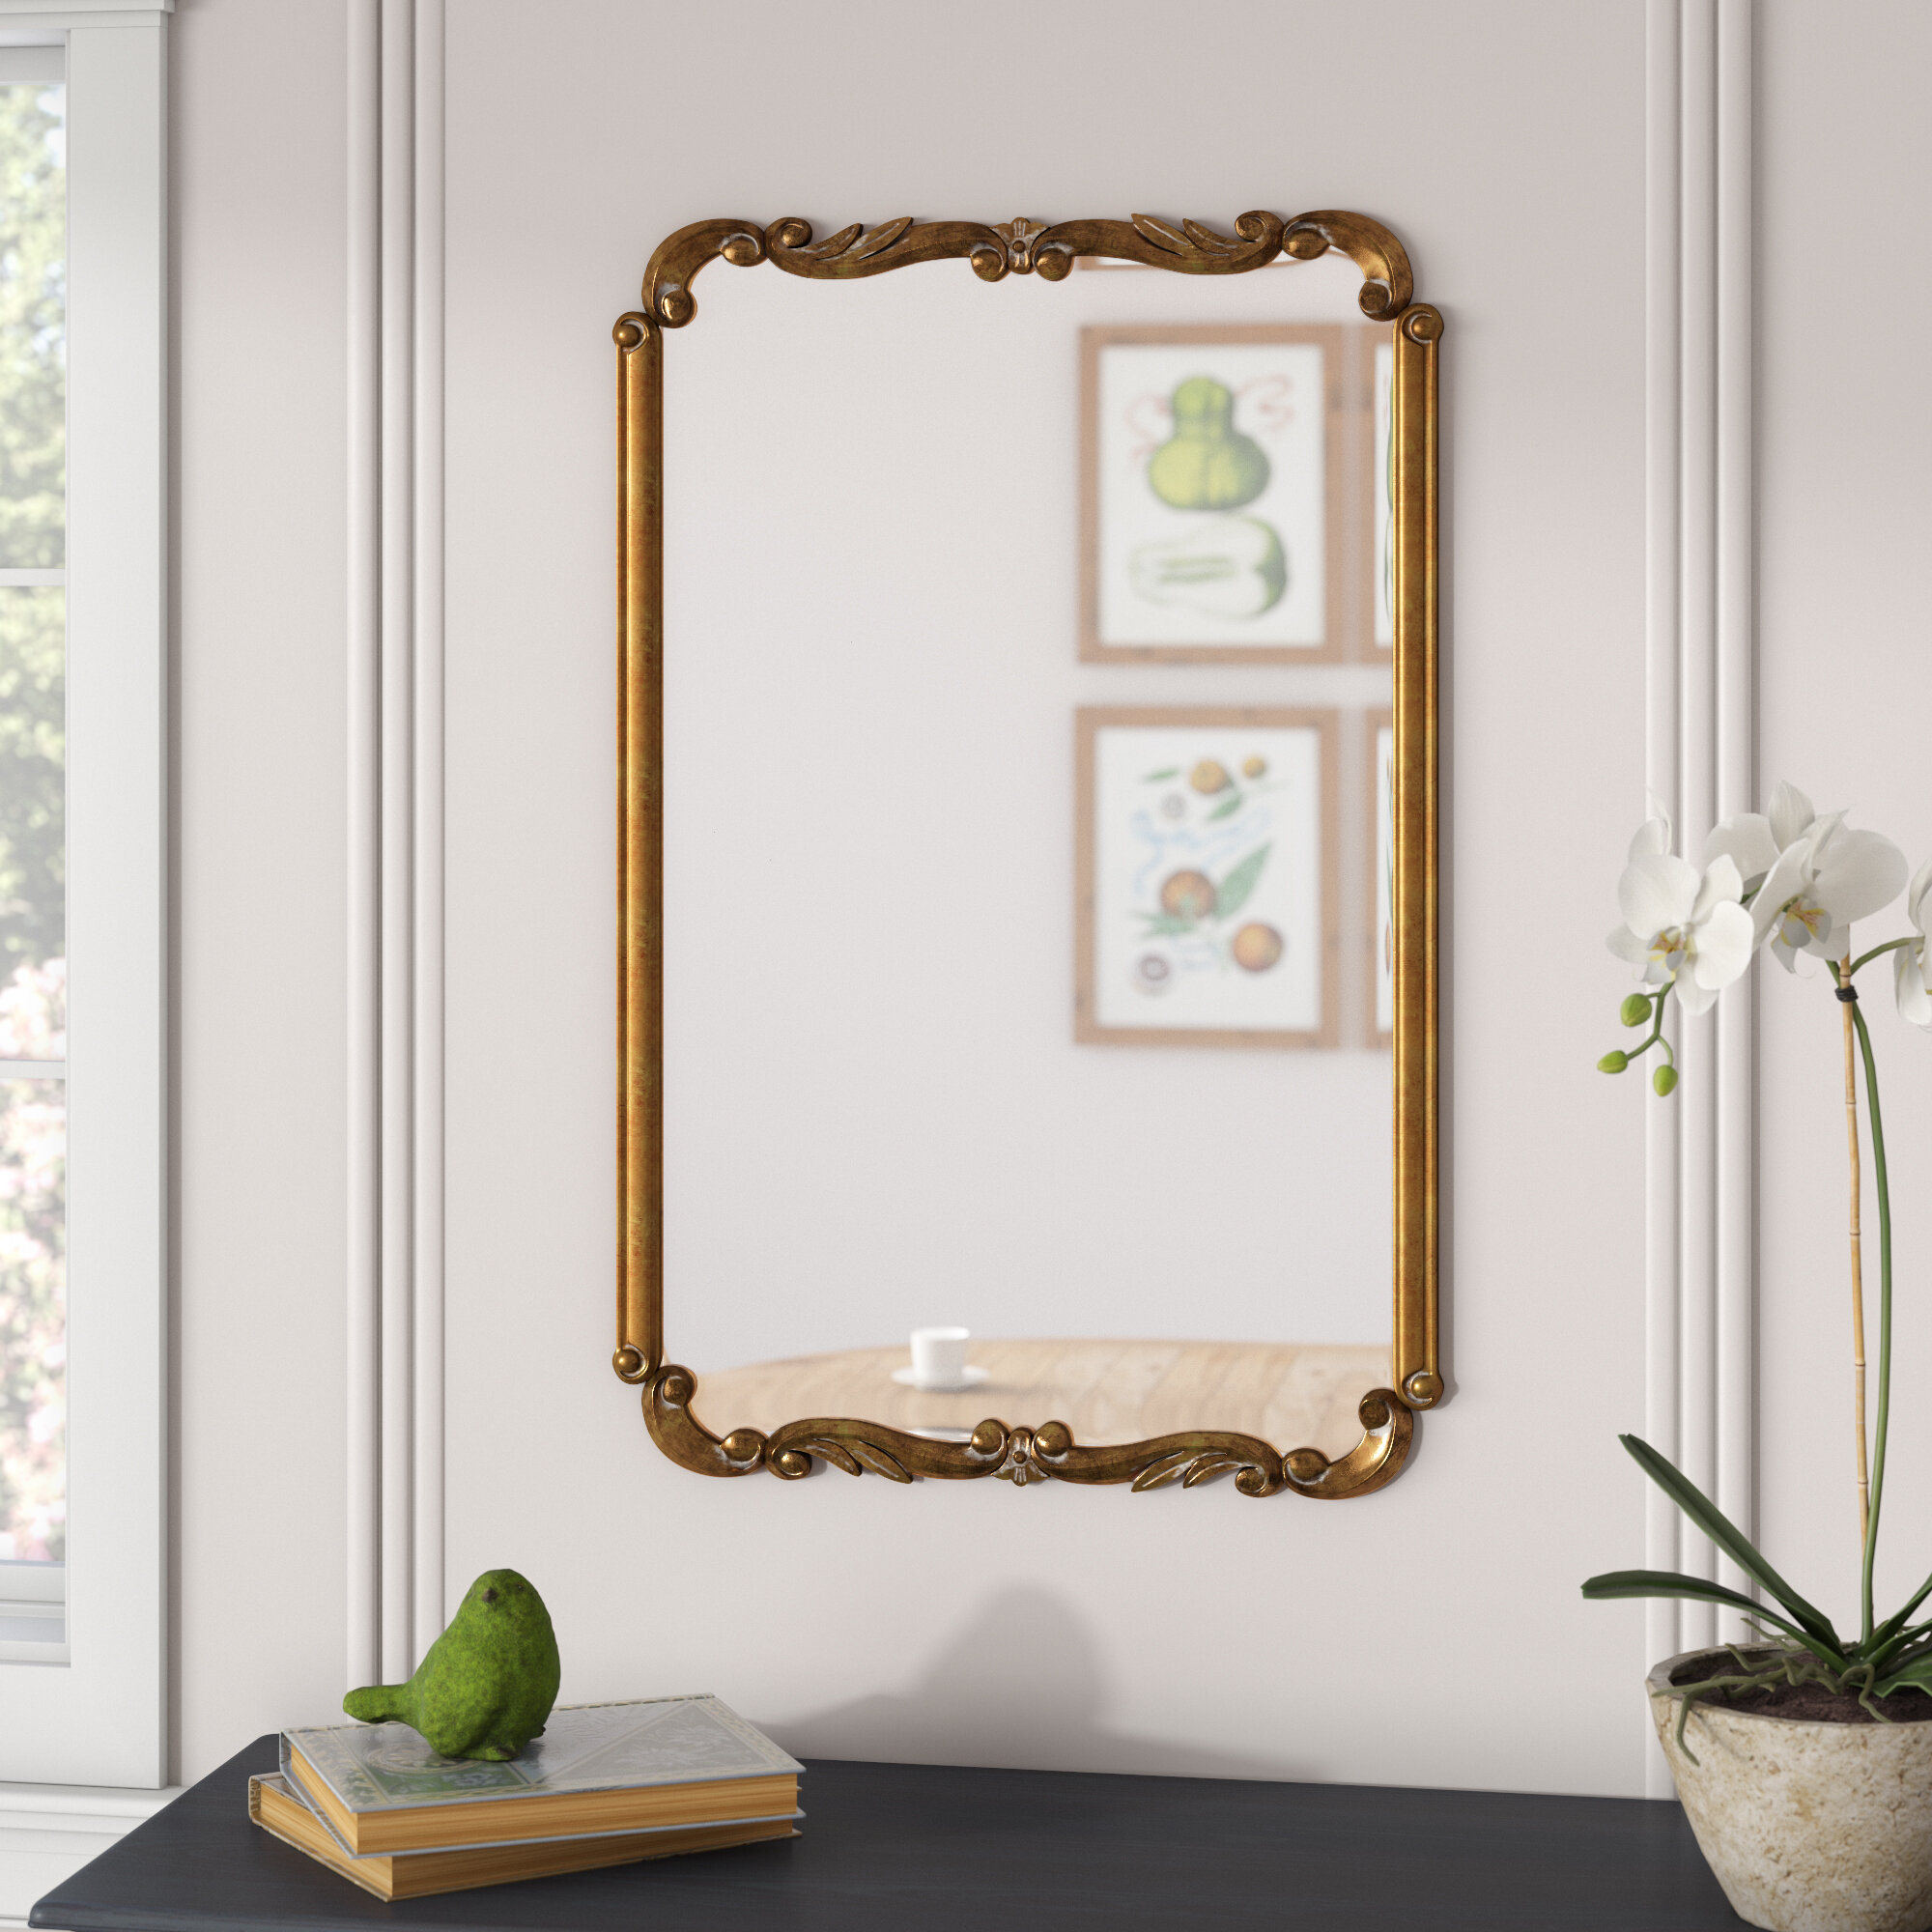 3X5 Mirror | Wayfair with regard to Pennsburg Rectangle Wall Mirrors (Image 2 of 30)